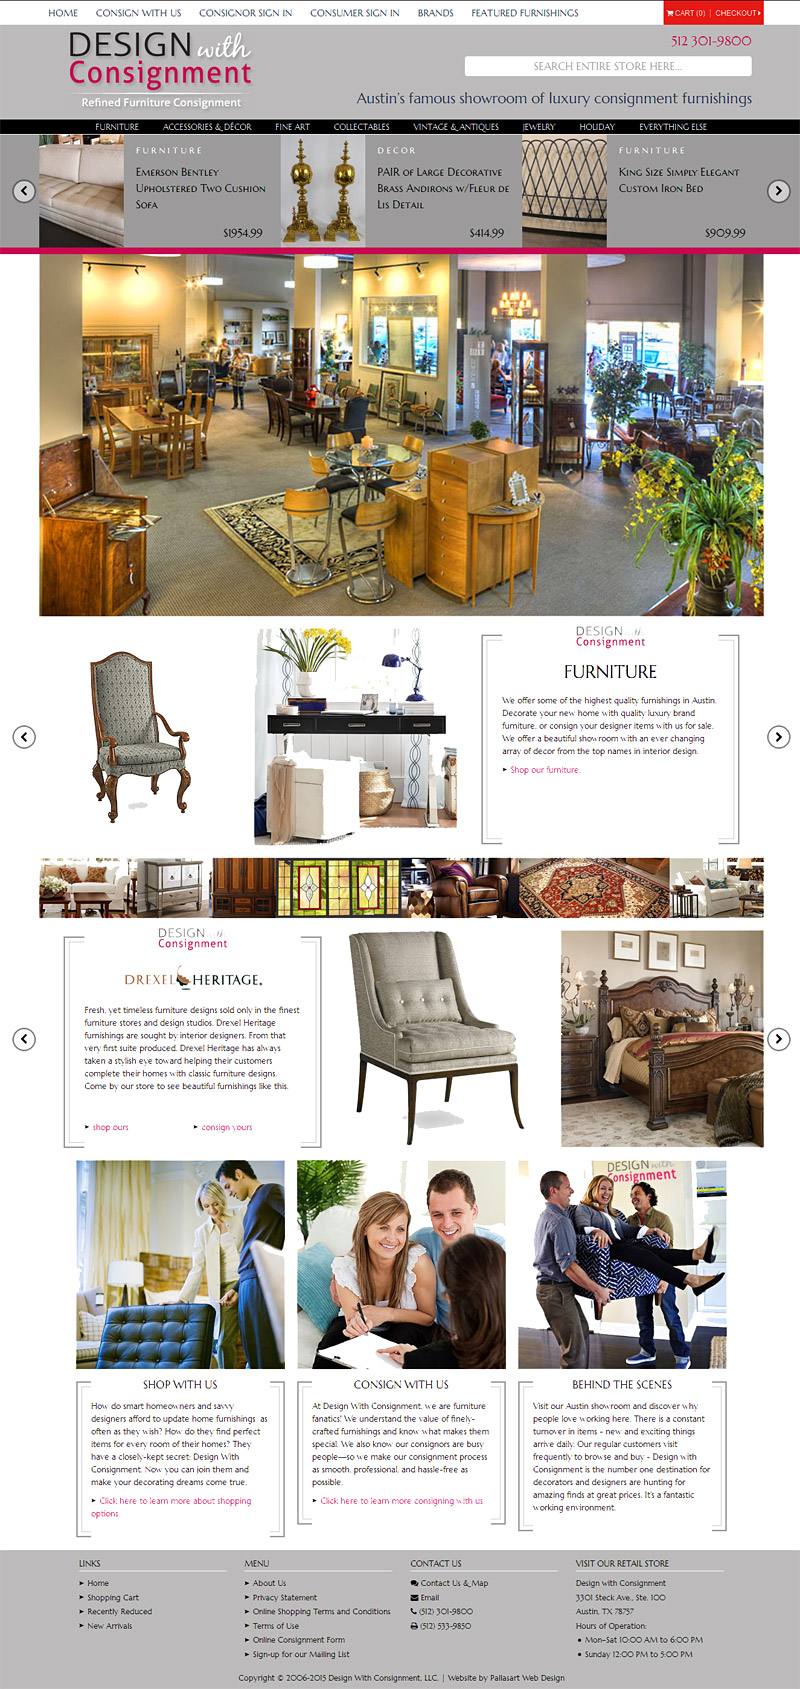 New Website for Austin's Design With Consignment Showroom